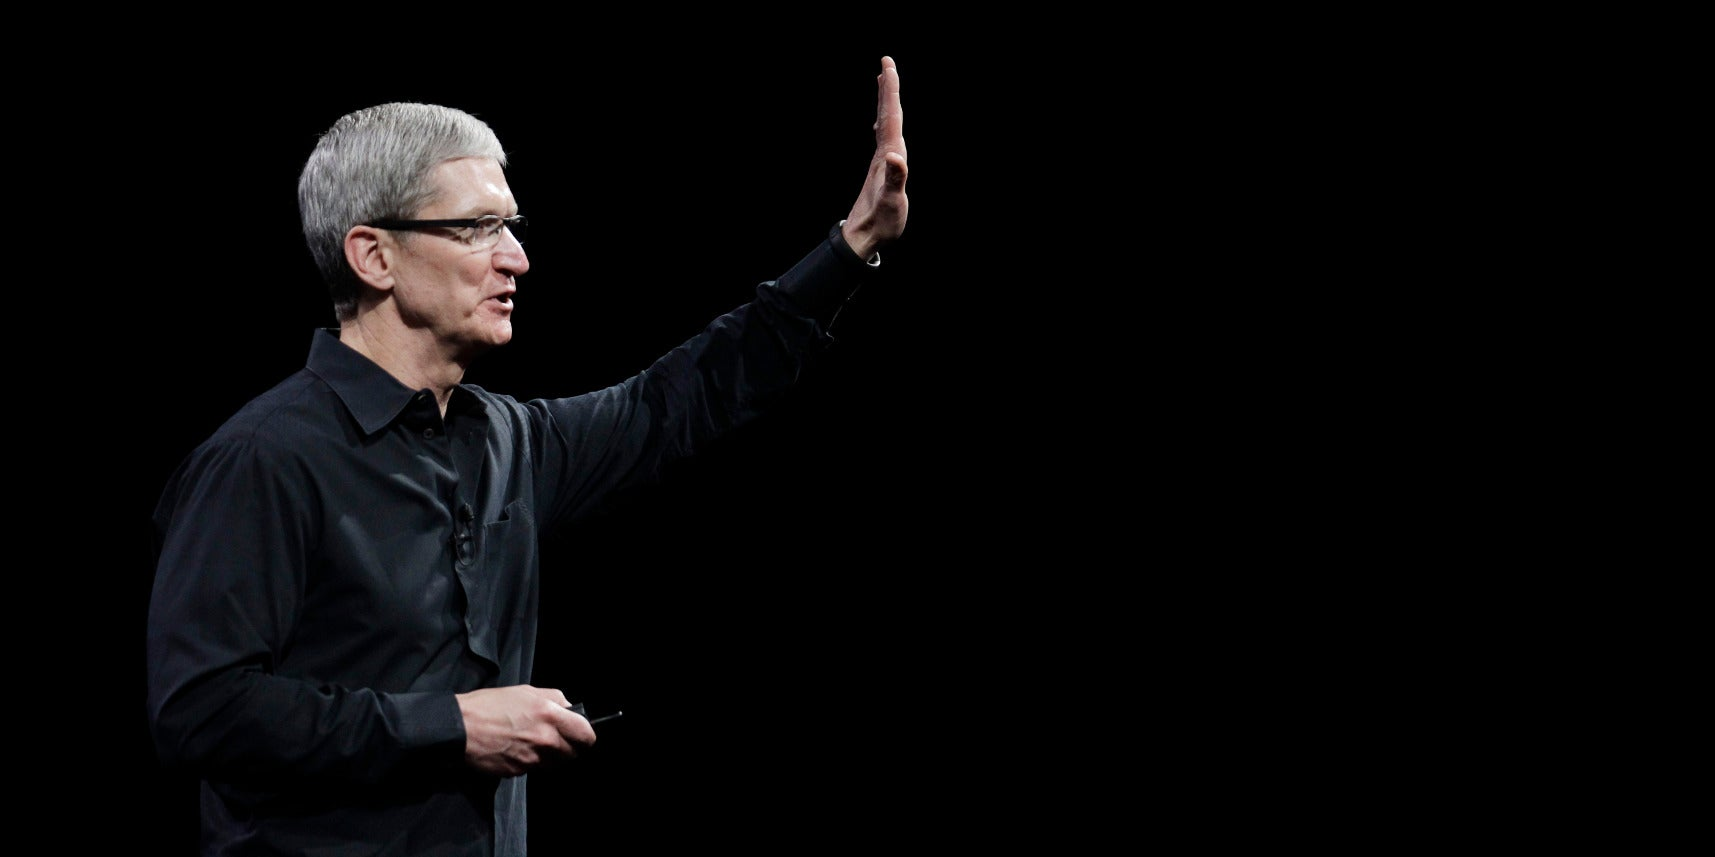 Apple Formally Objects to the UK's Investigatory Powers Bill